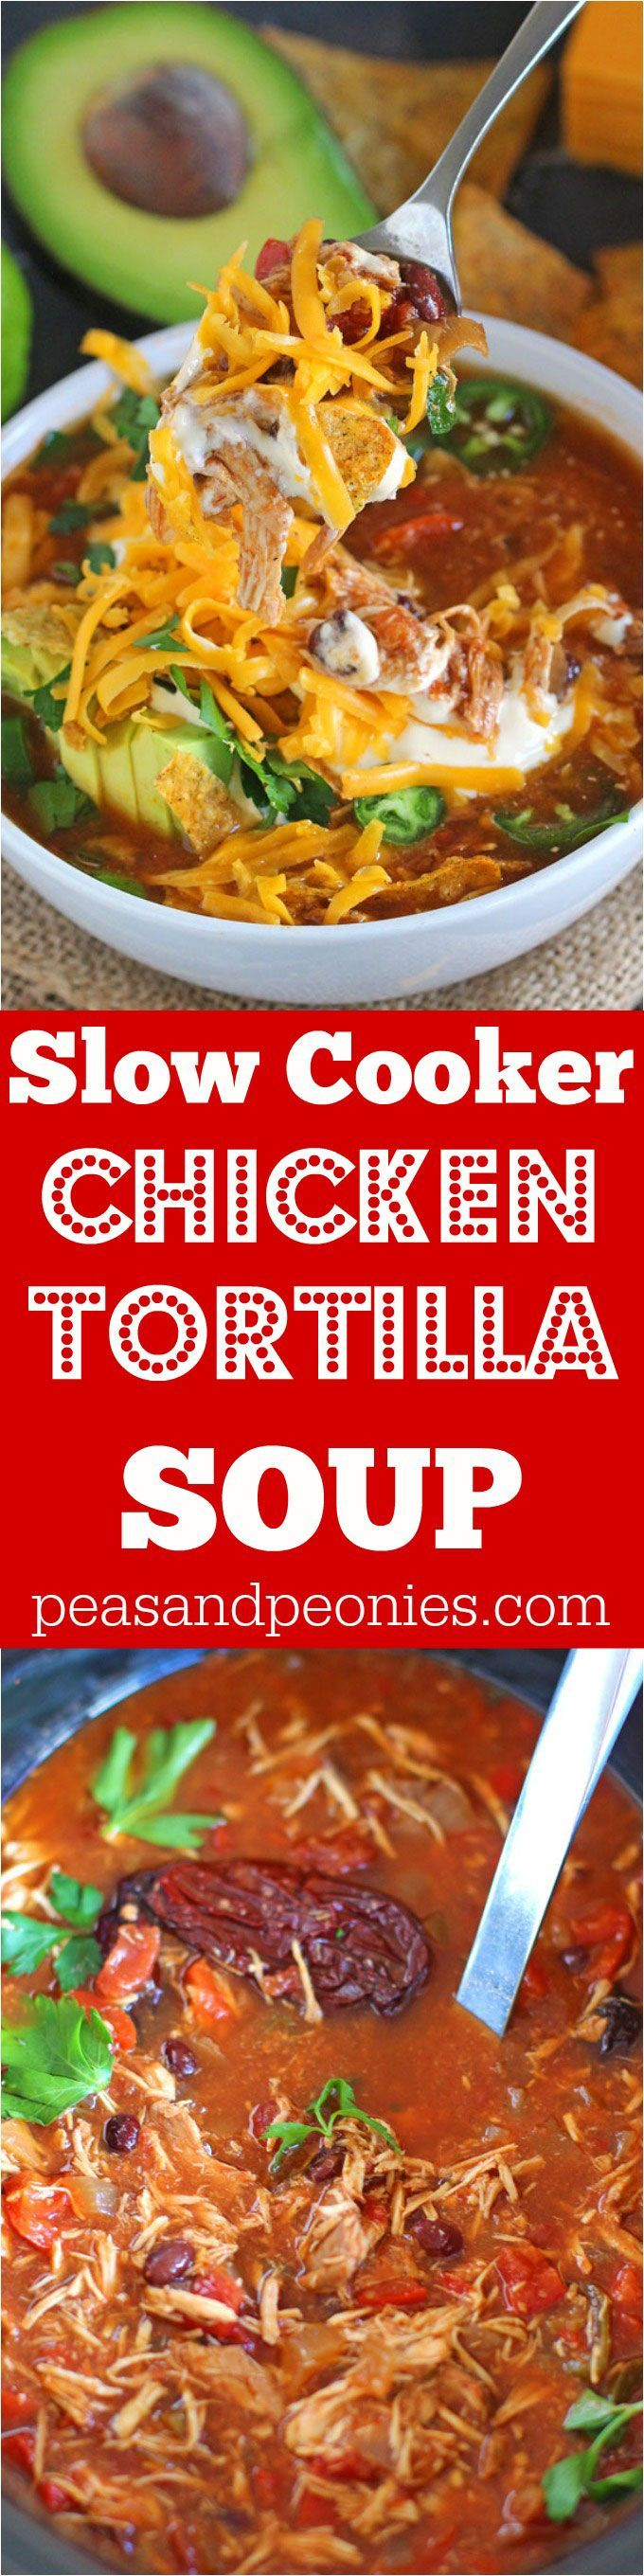 Hearty and spicy, loaded with you favorite fixings, this easy to make Slow Cooker Chicken Tortilla Soup is the epitome of comfort food.